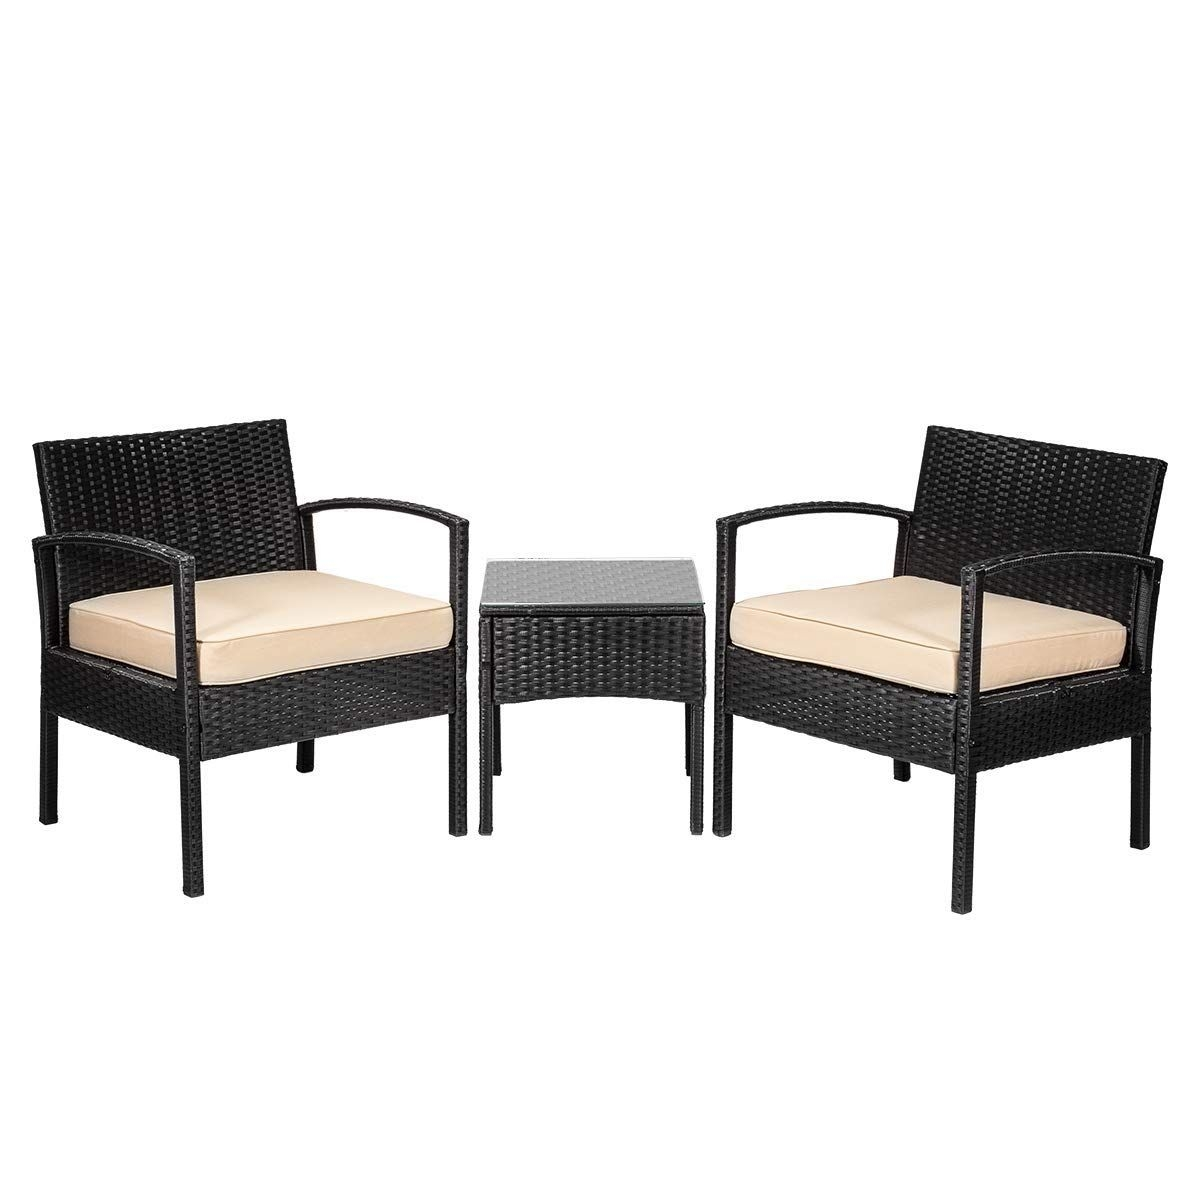 3 Piece Wicker Patio Set You Ll Love In 2021 Visualhunt